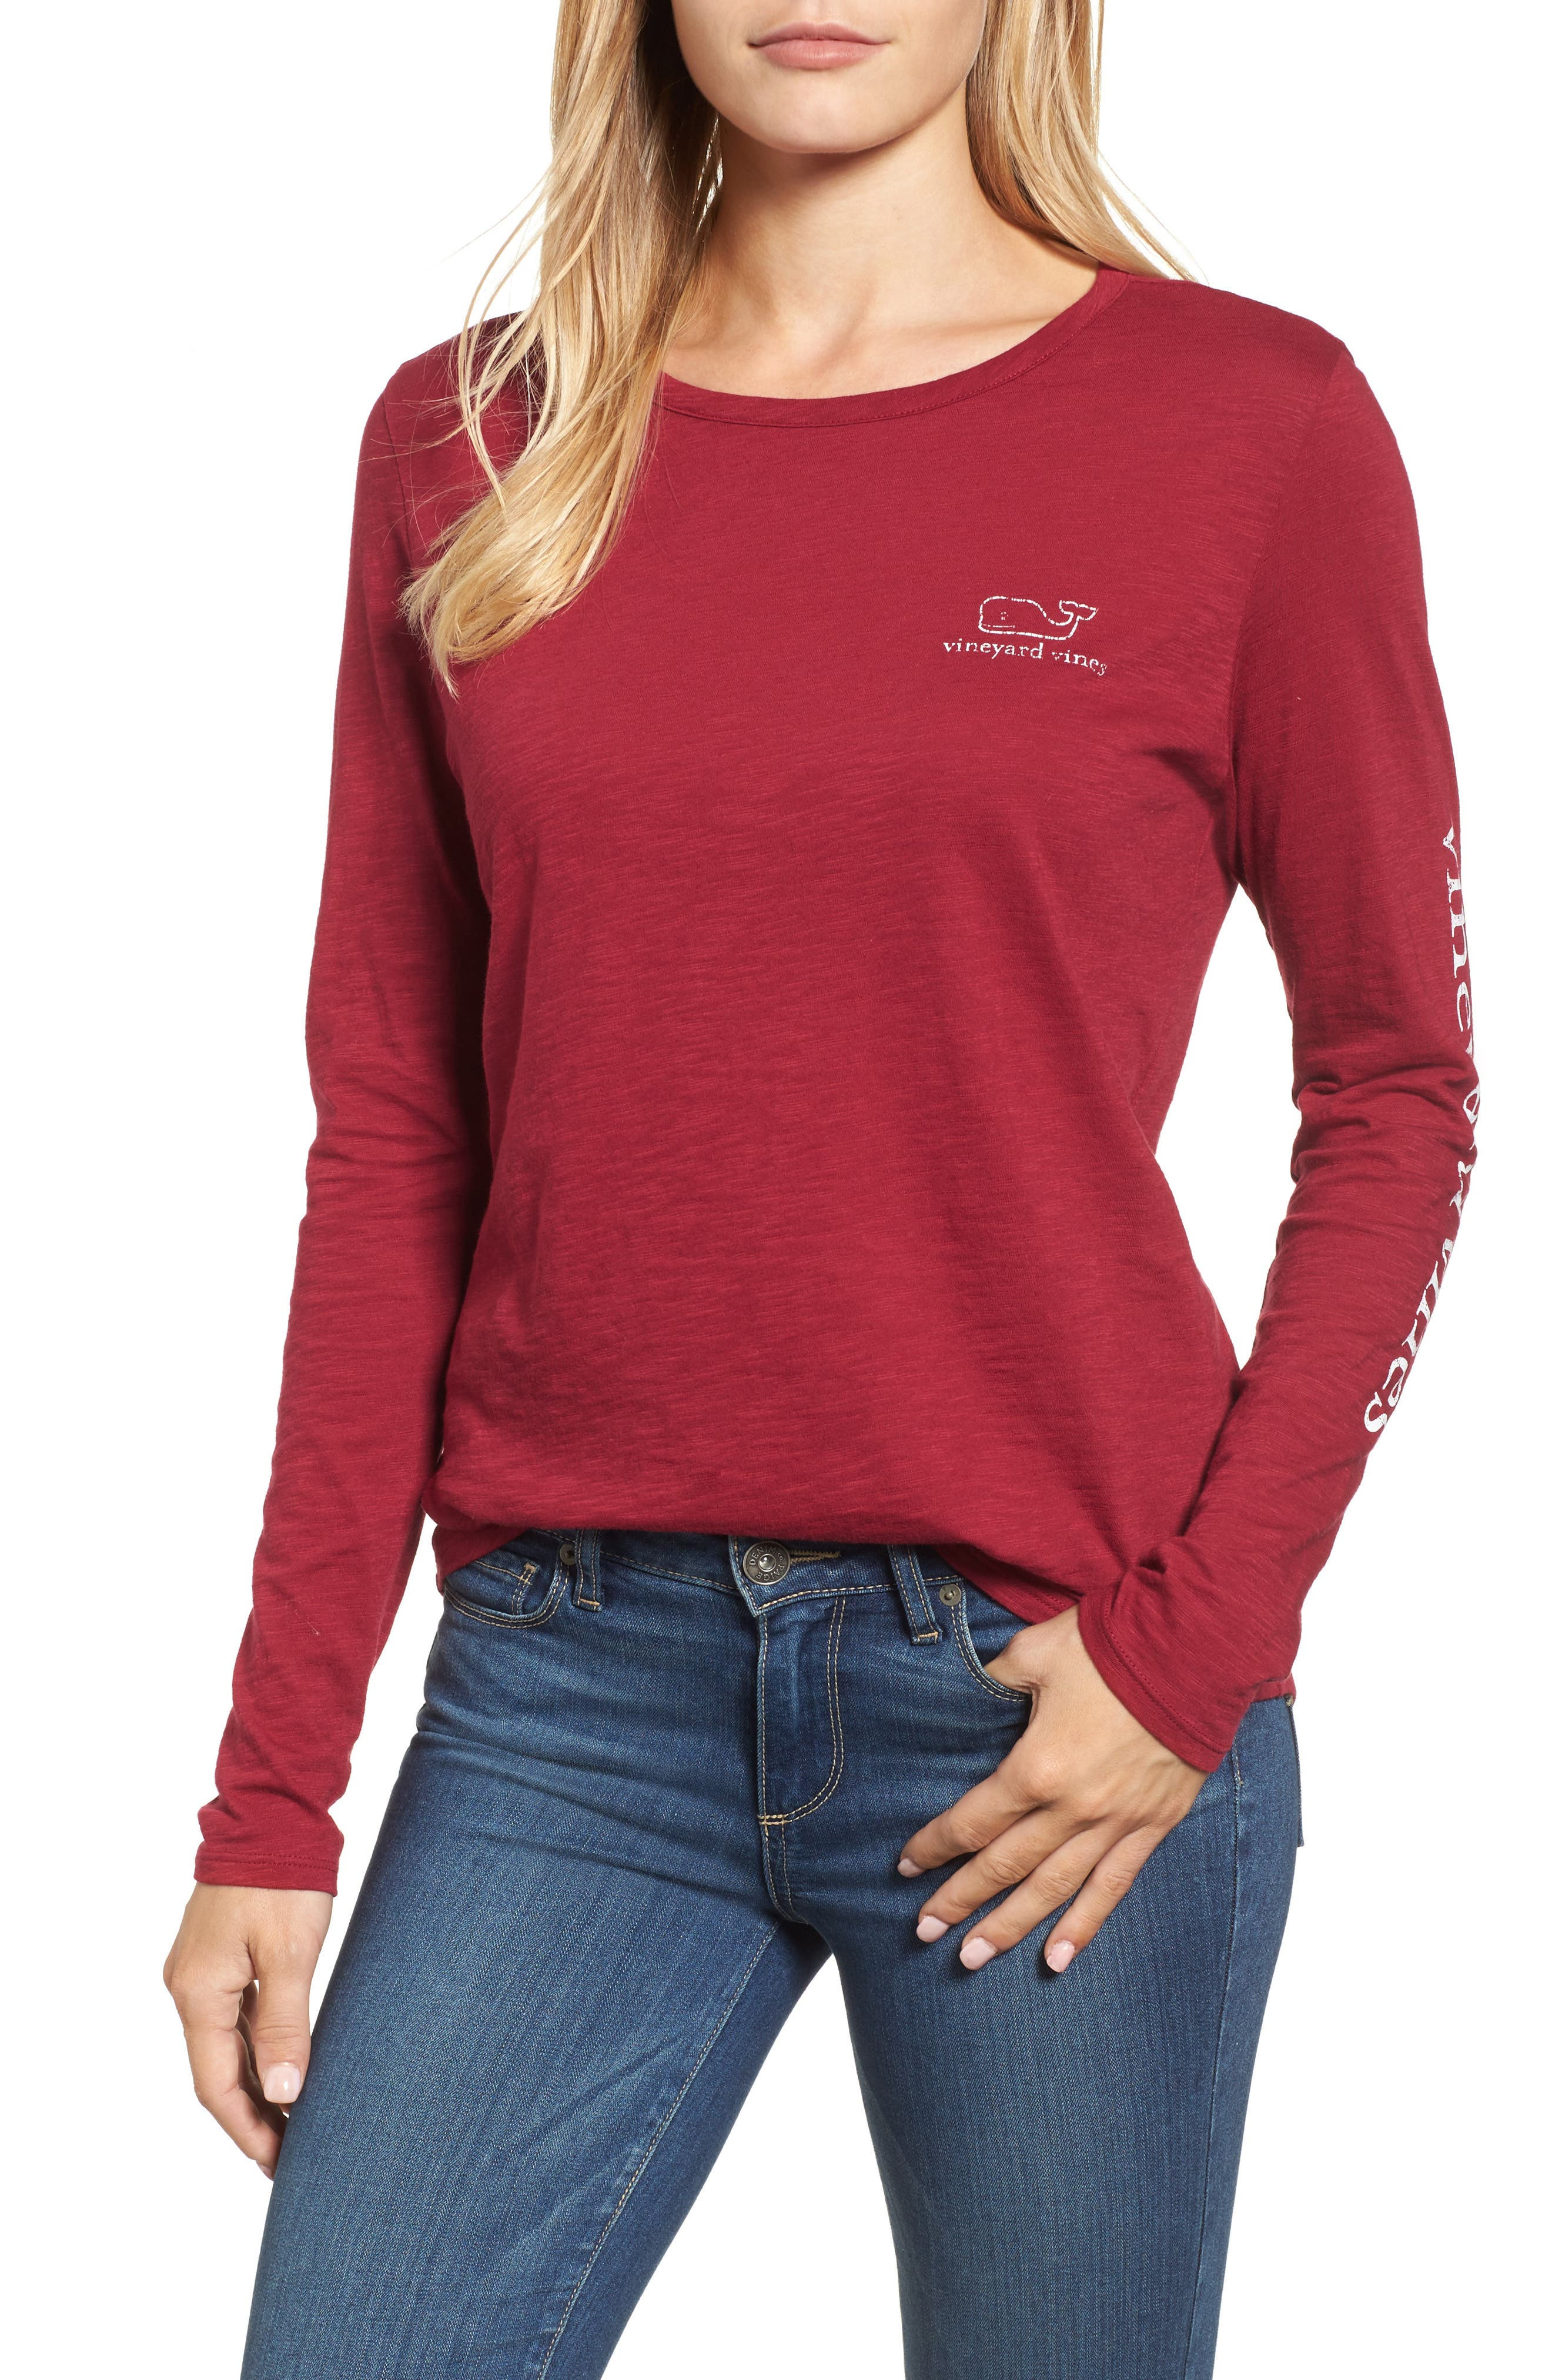 vineyard vines Long Sleeve Logo Tee